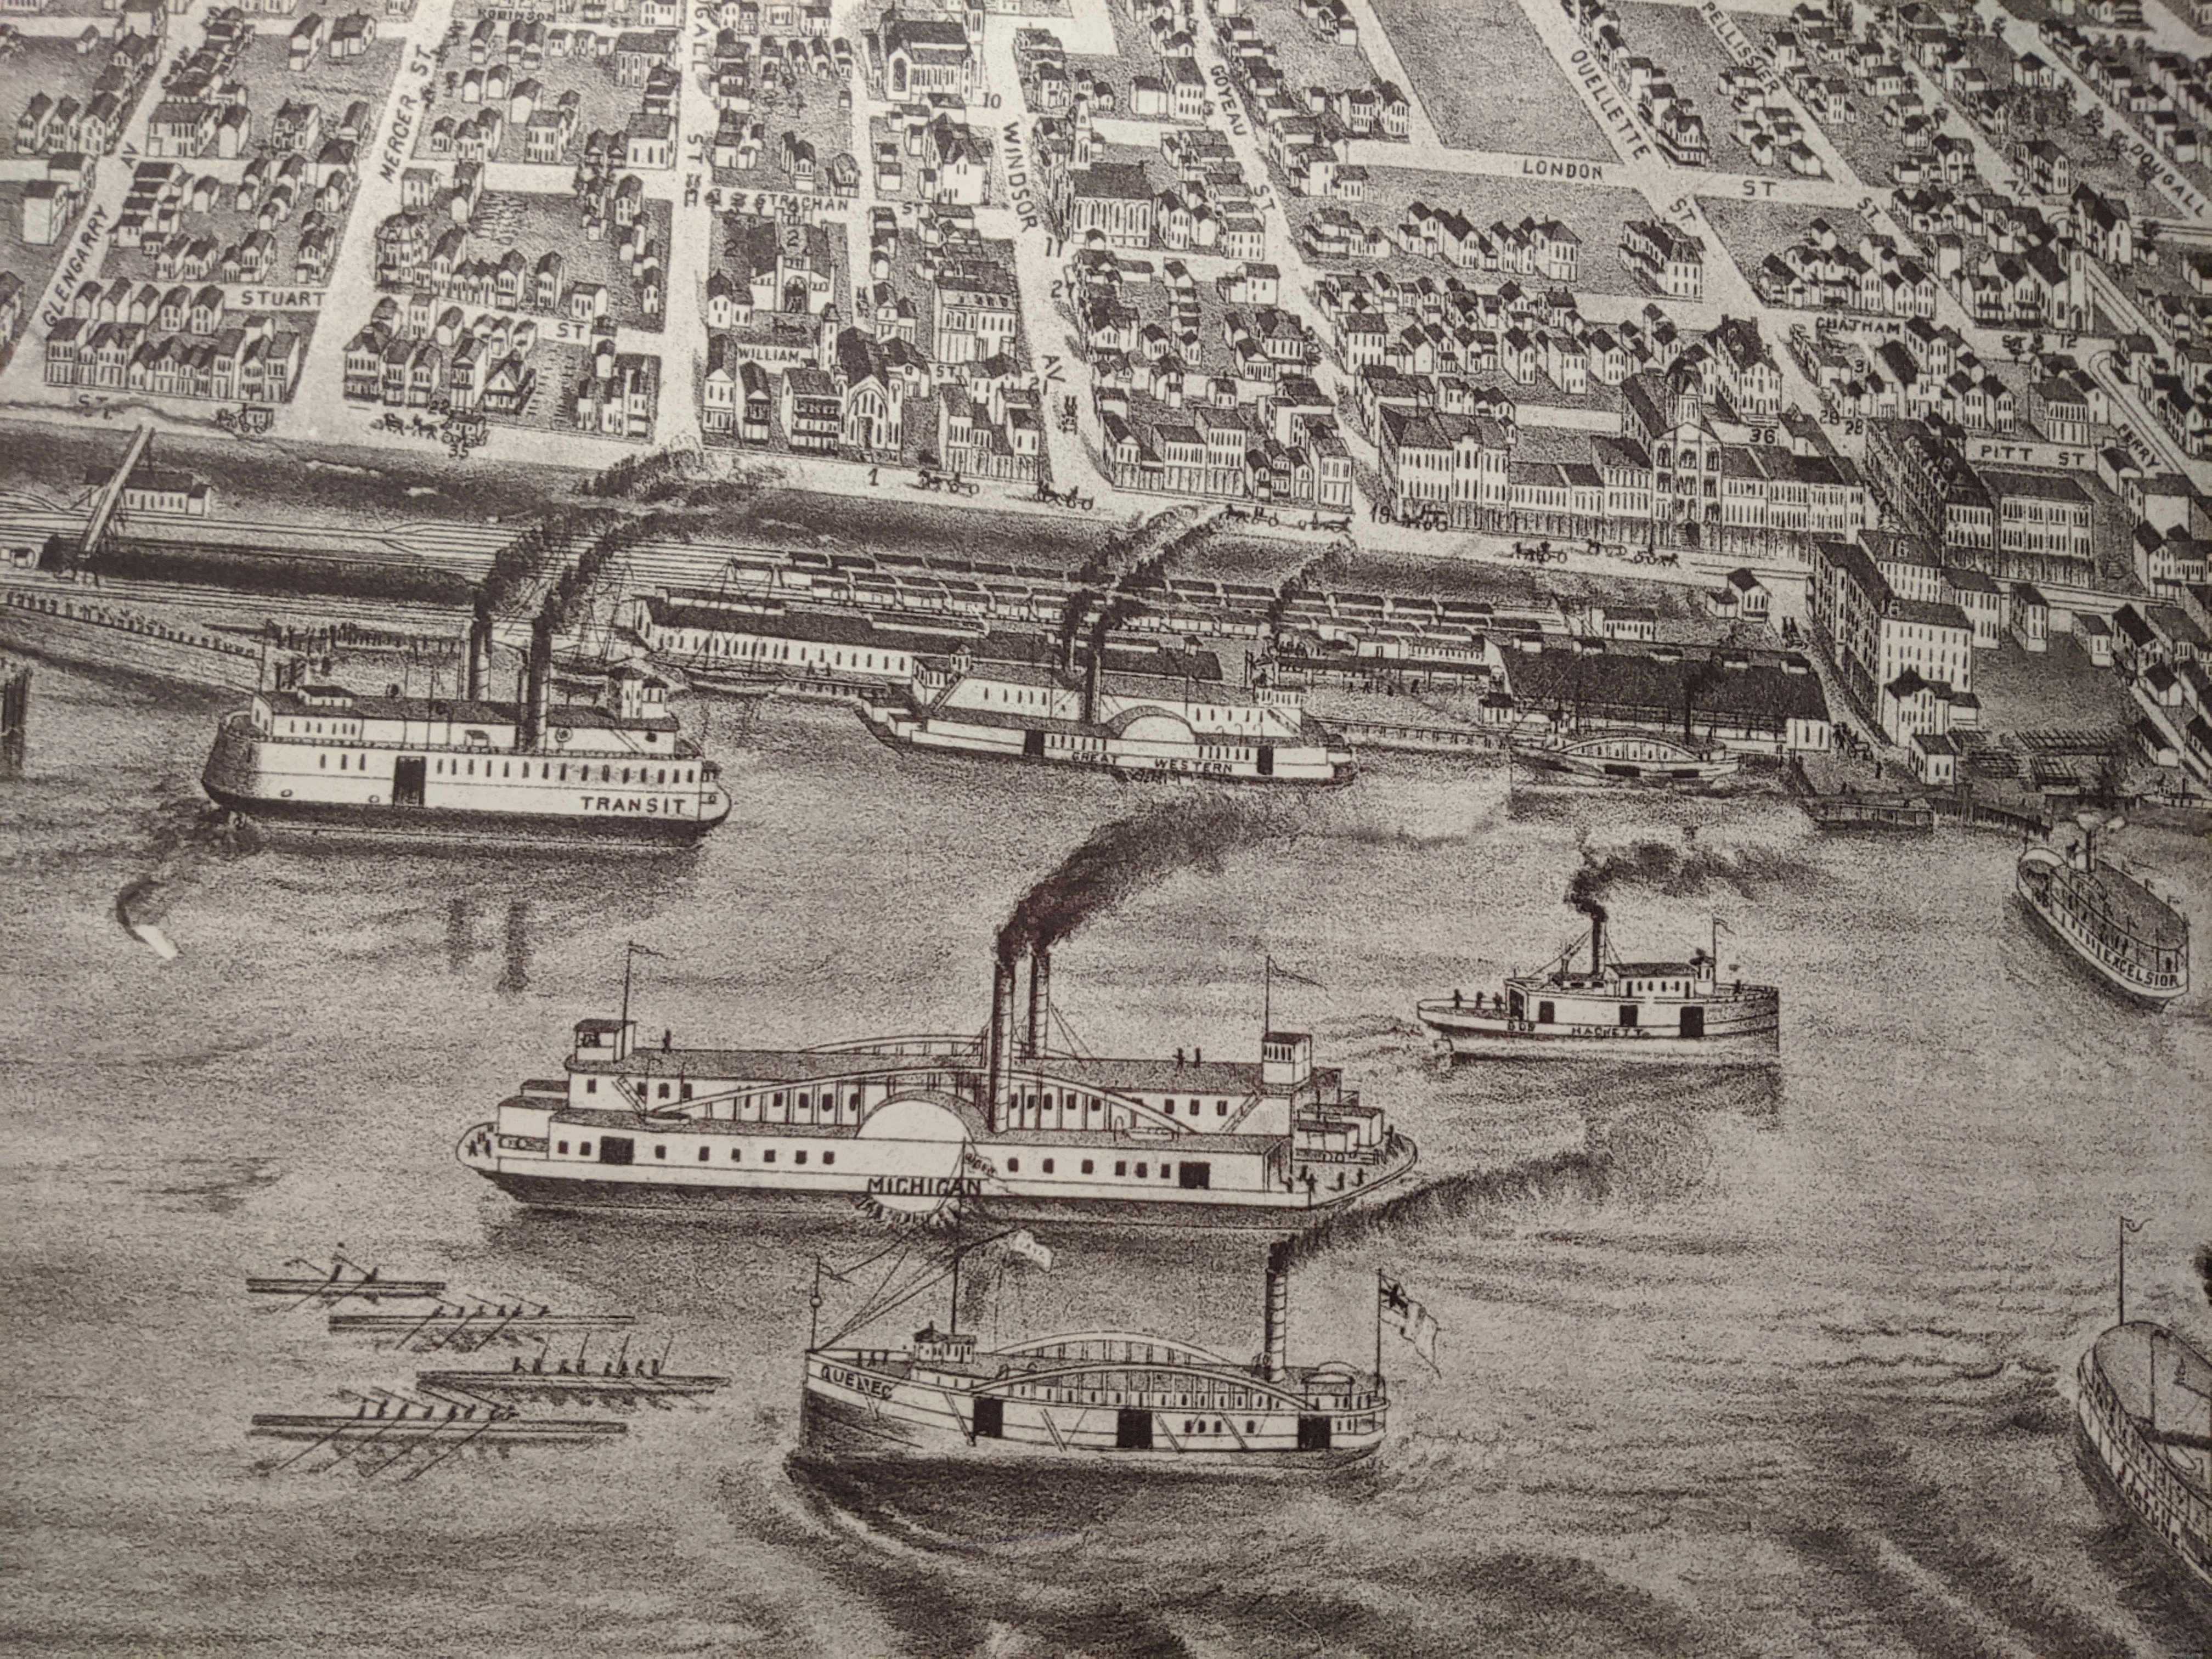 Historical drawing of boats on the Detroit River